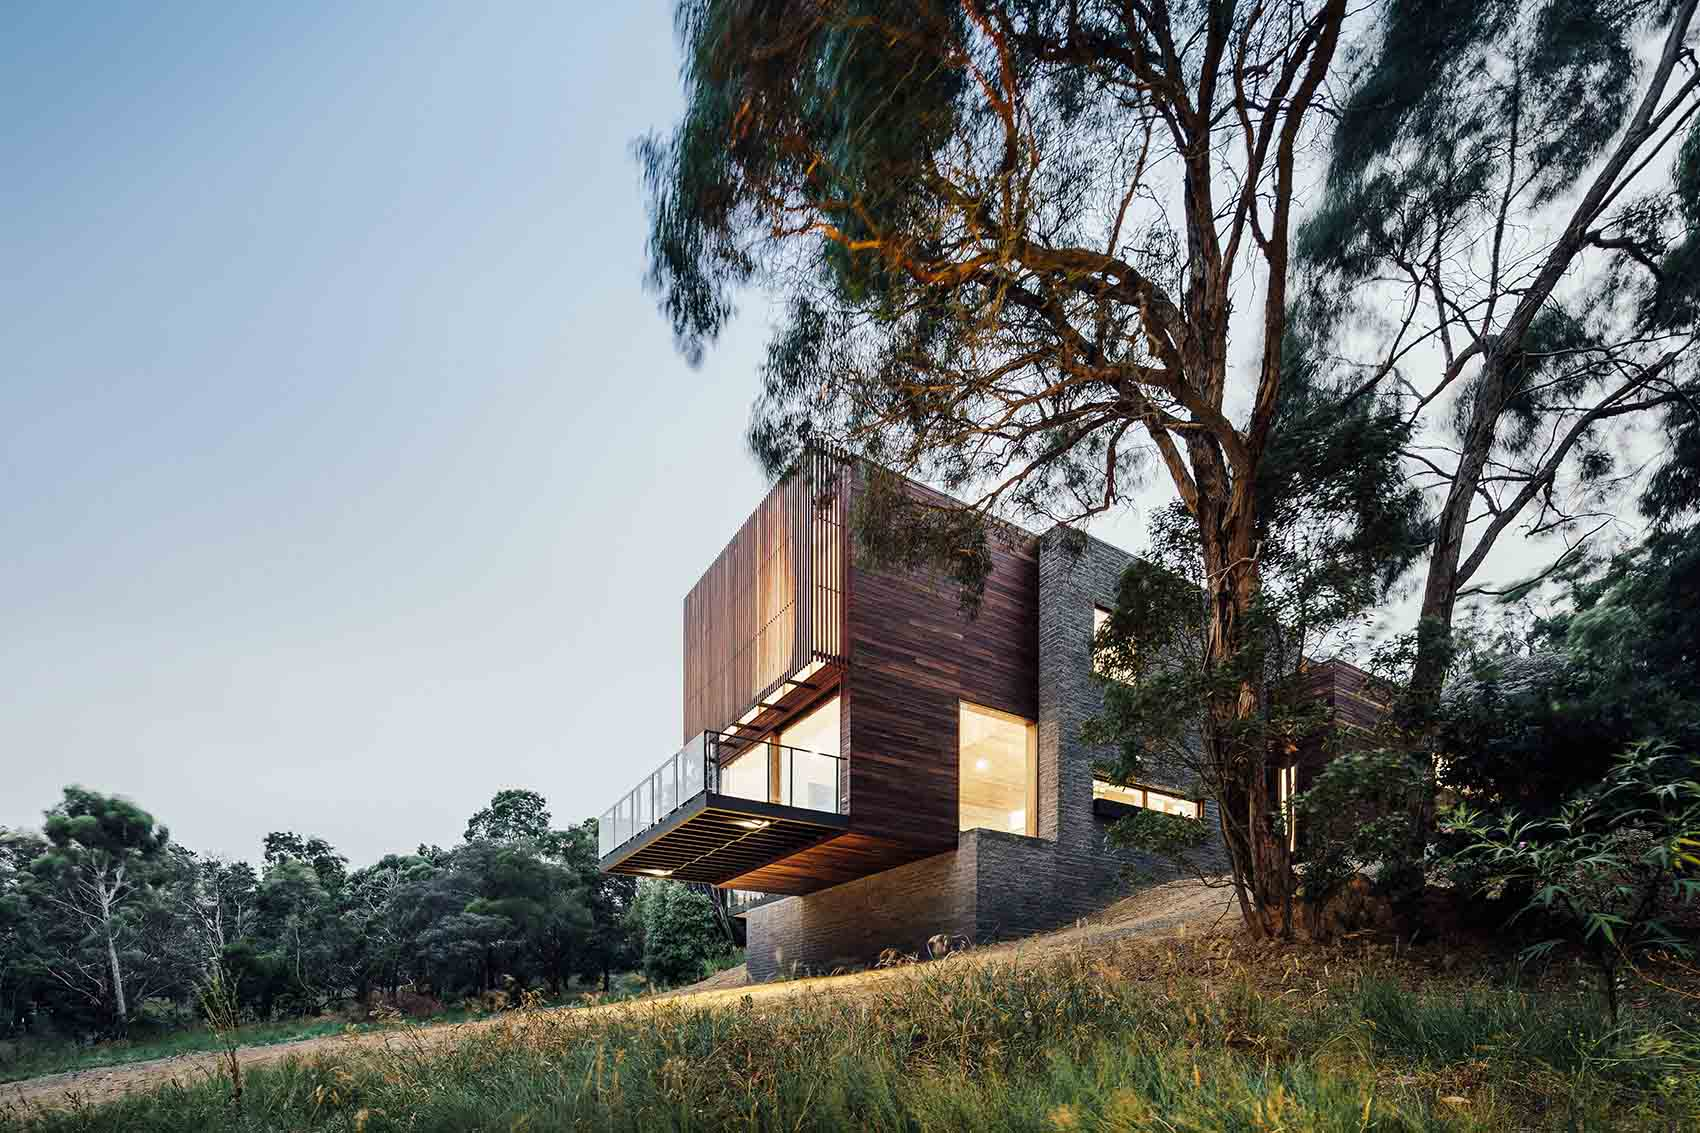 001-Invermay-House-By-Moloney-Architects.jpg